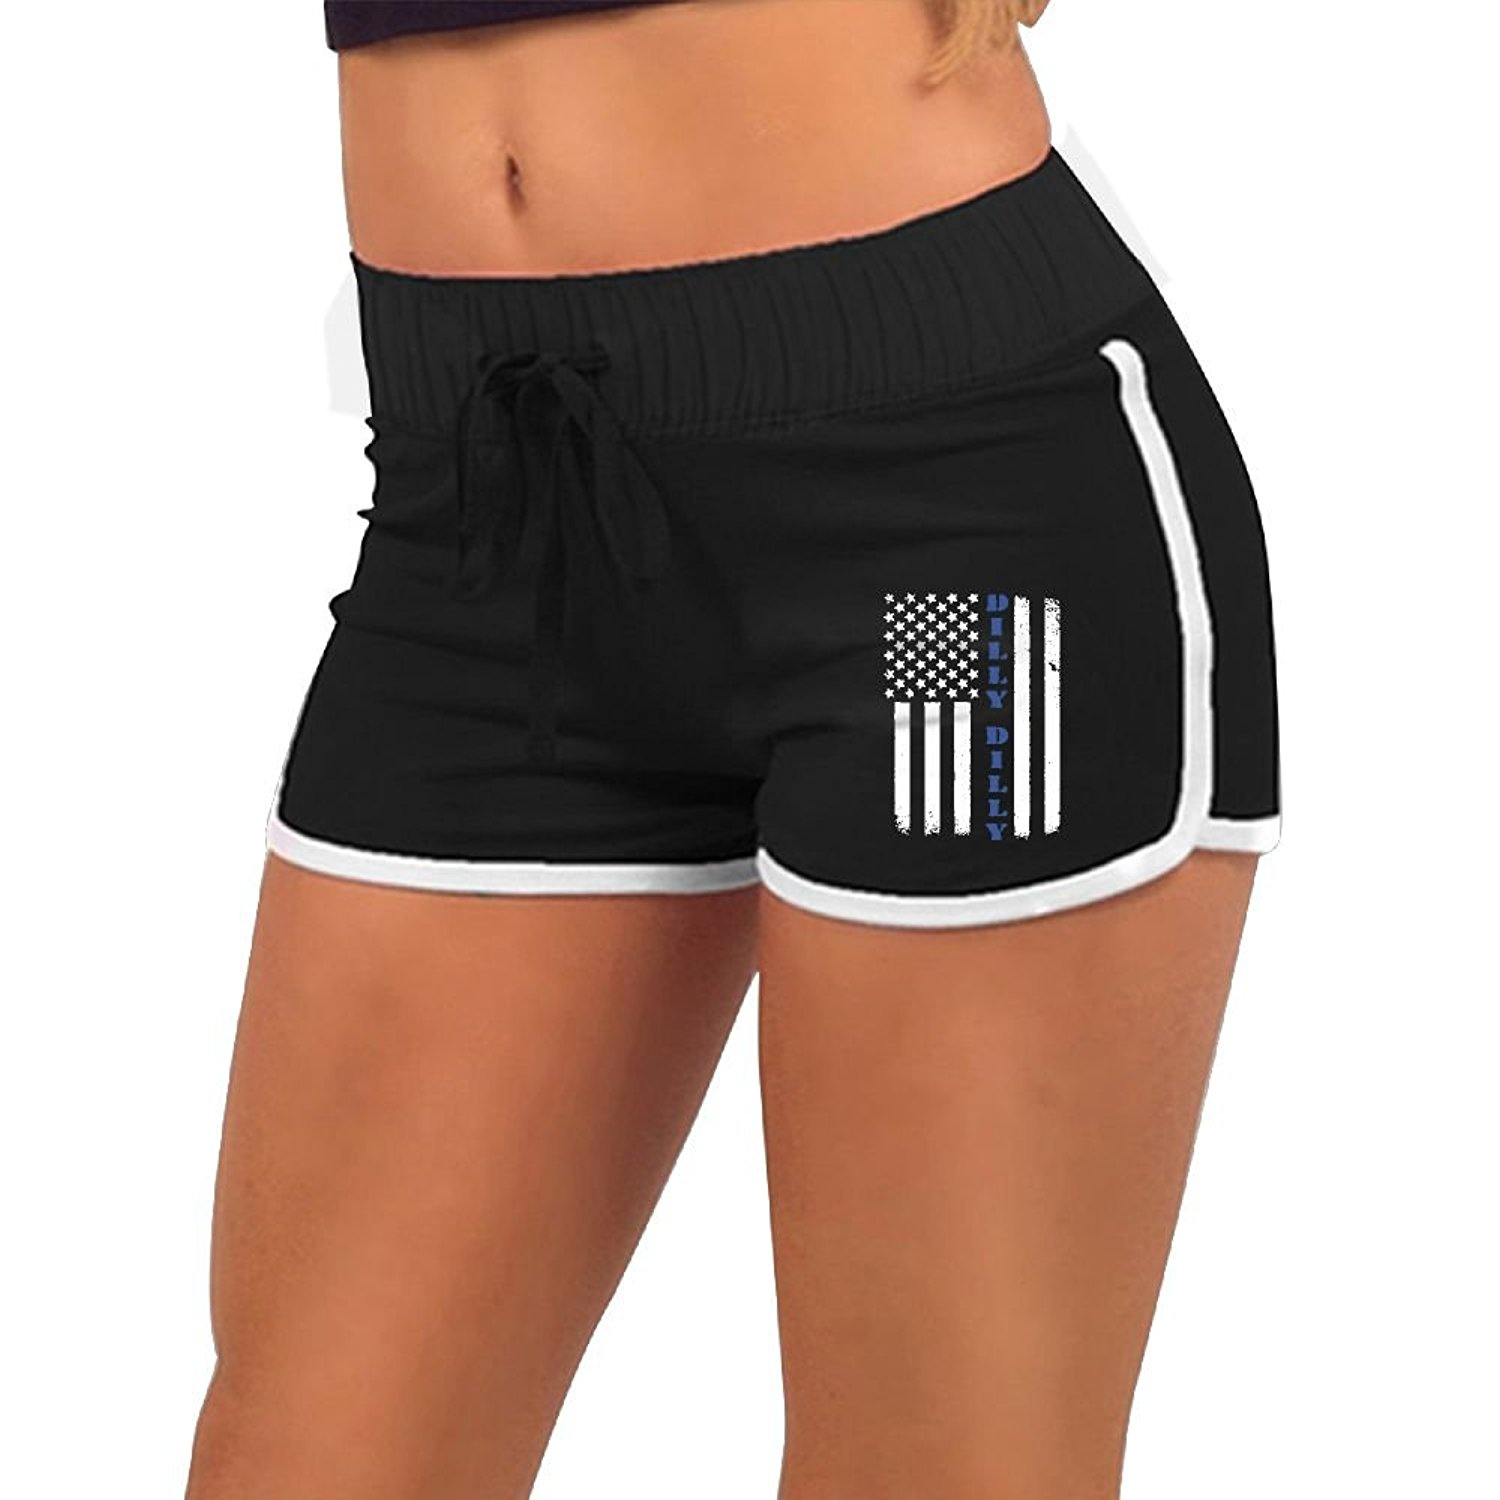 EWJ77LPWs Dilly Dilly American Flag Summer Women's Low-Waist Sexy Hot Pants Stretch Briefs Home Shorts